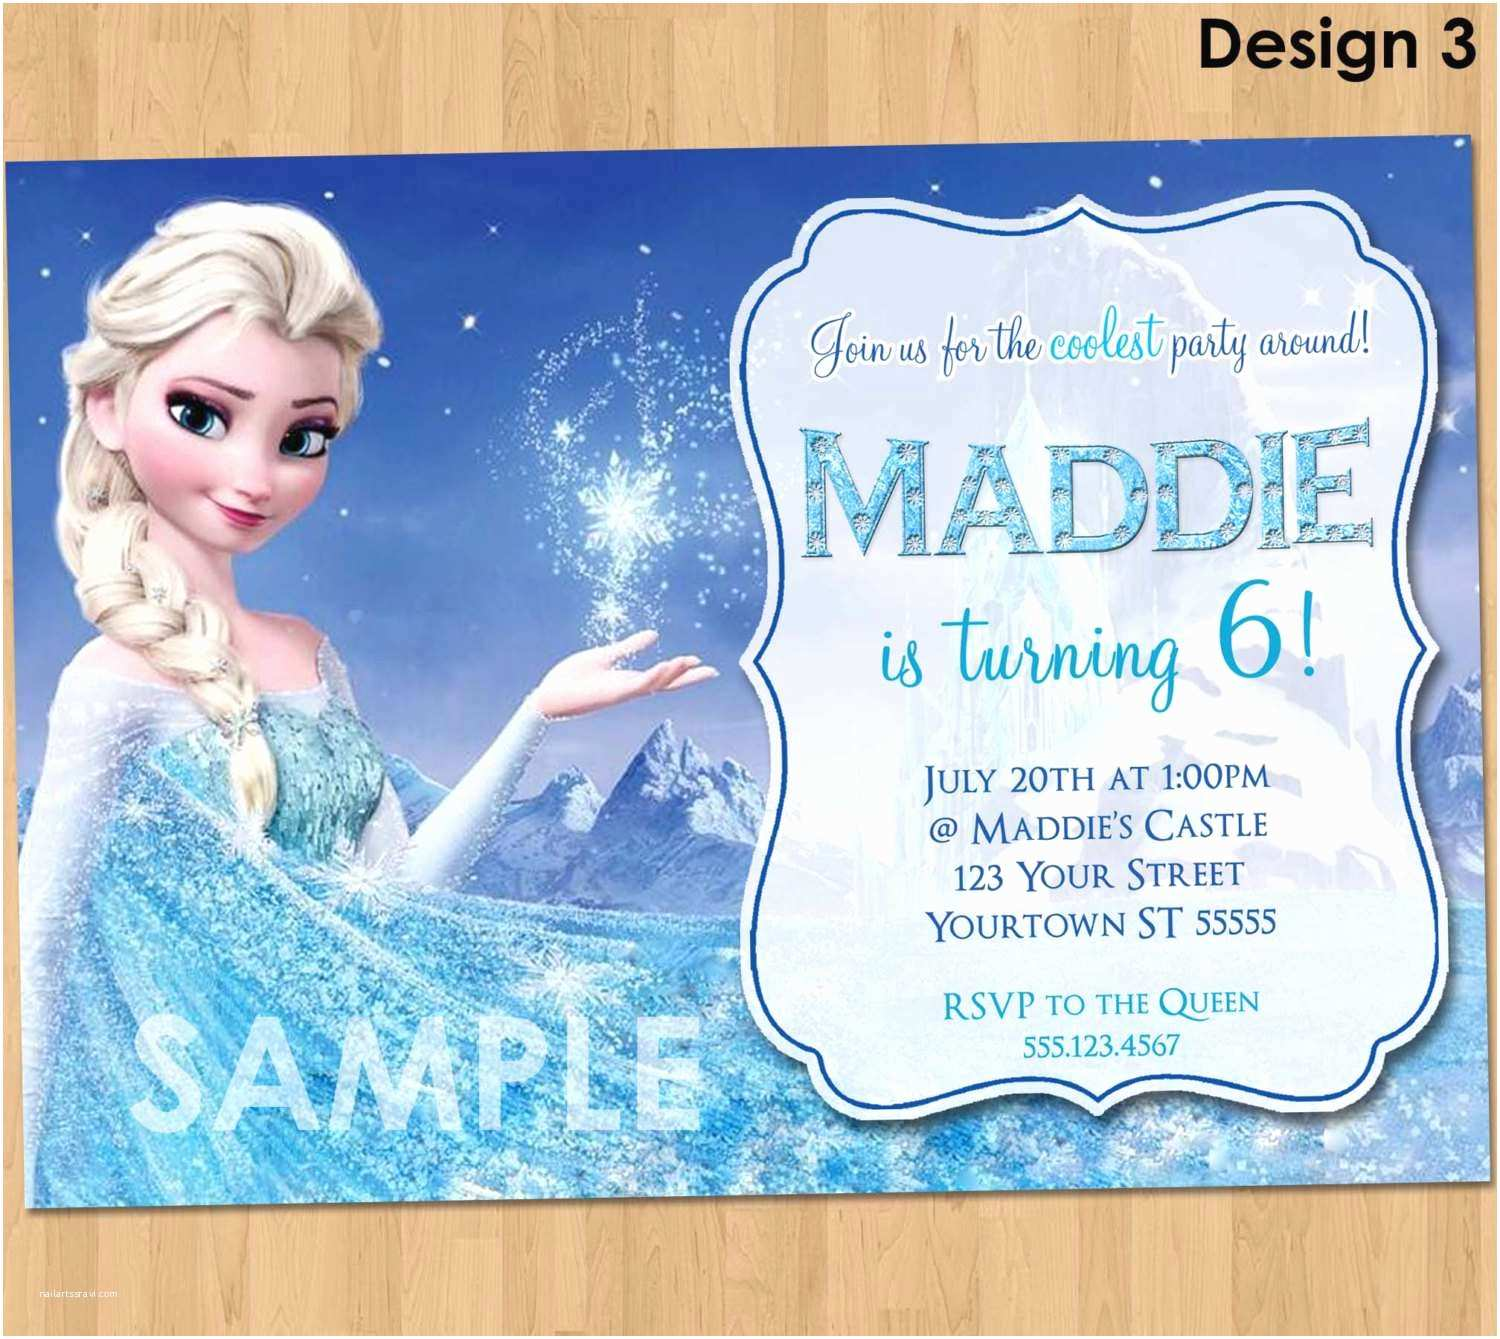 walgreens birthday invitations walgreens picture invites nailartssravi